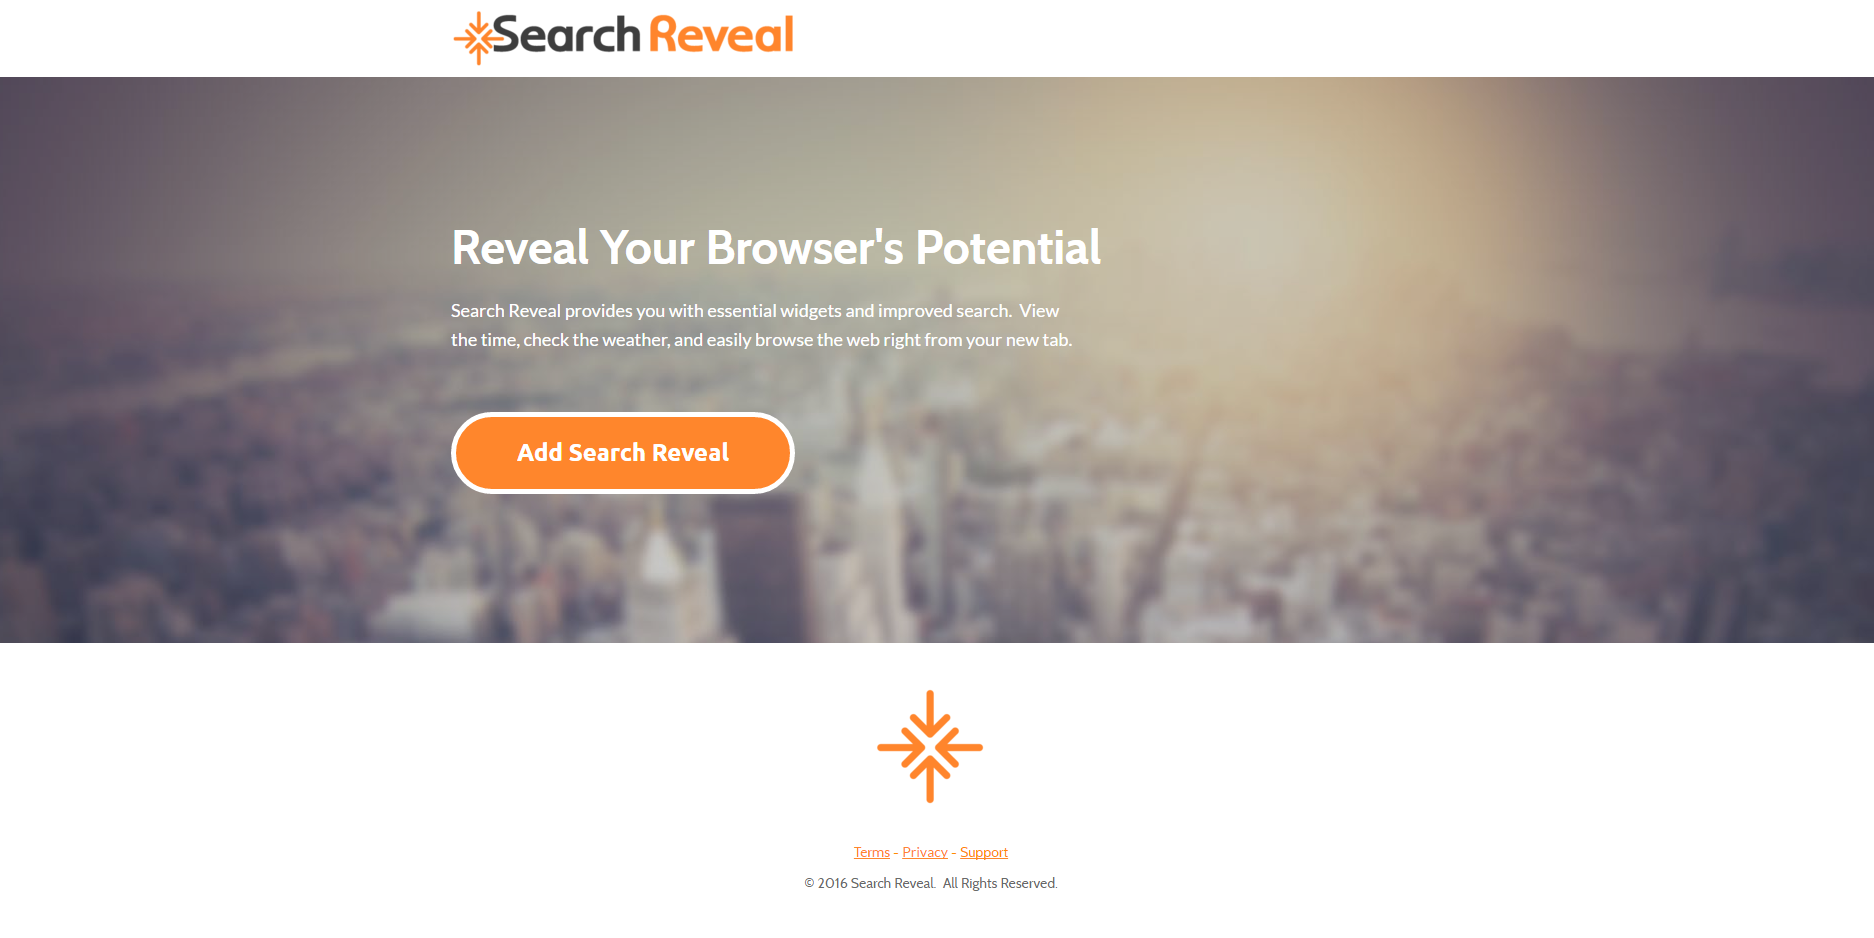 Search Reveal Ads